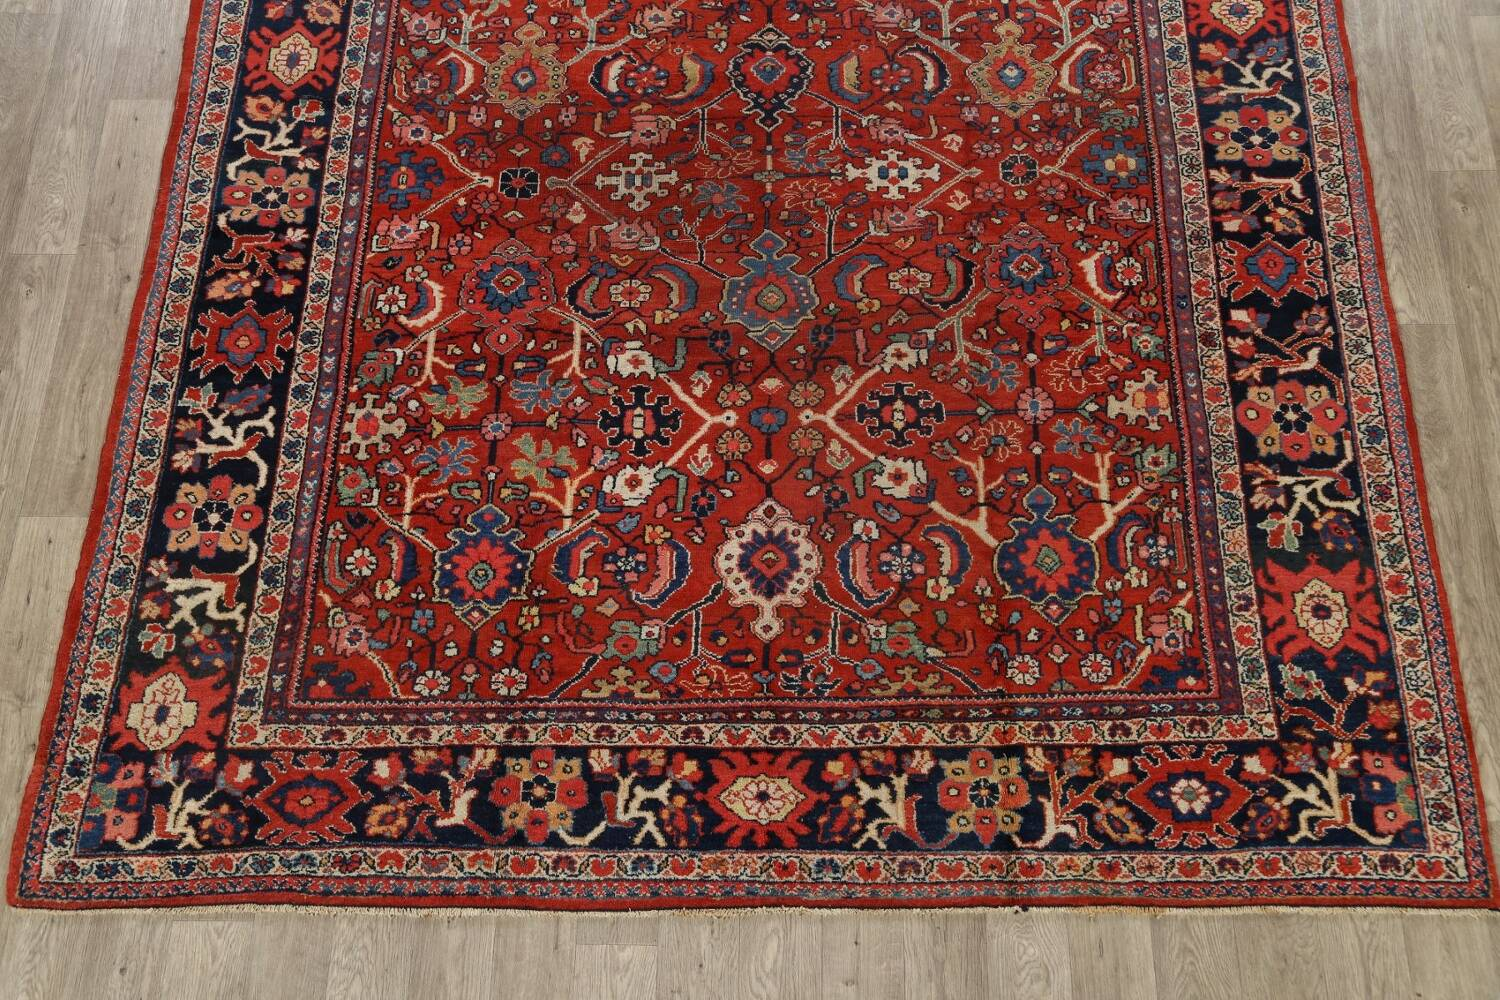 Antique Vegetable Dye Sultanabad Persian Area Rug 9x12 image 8